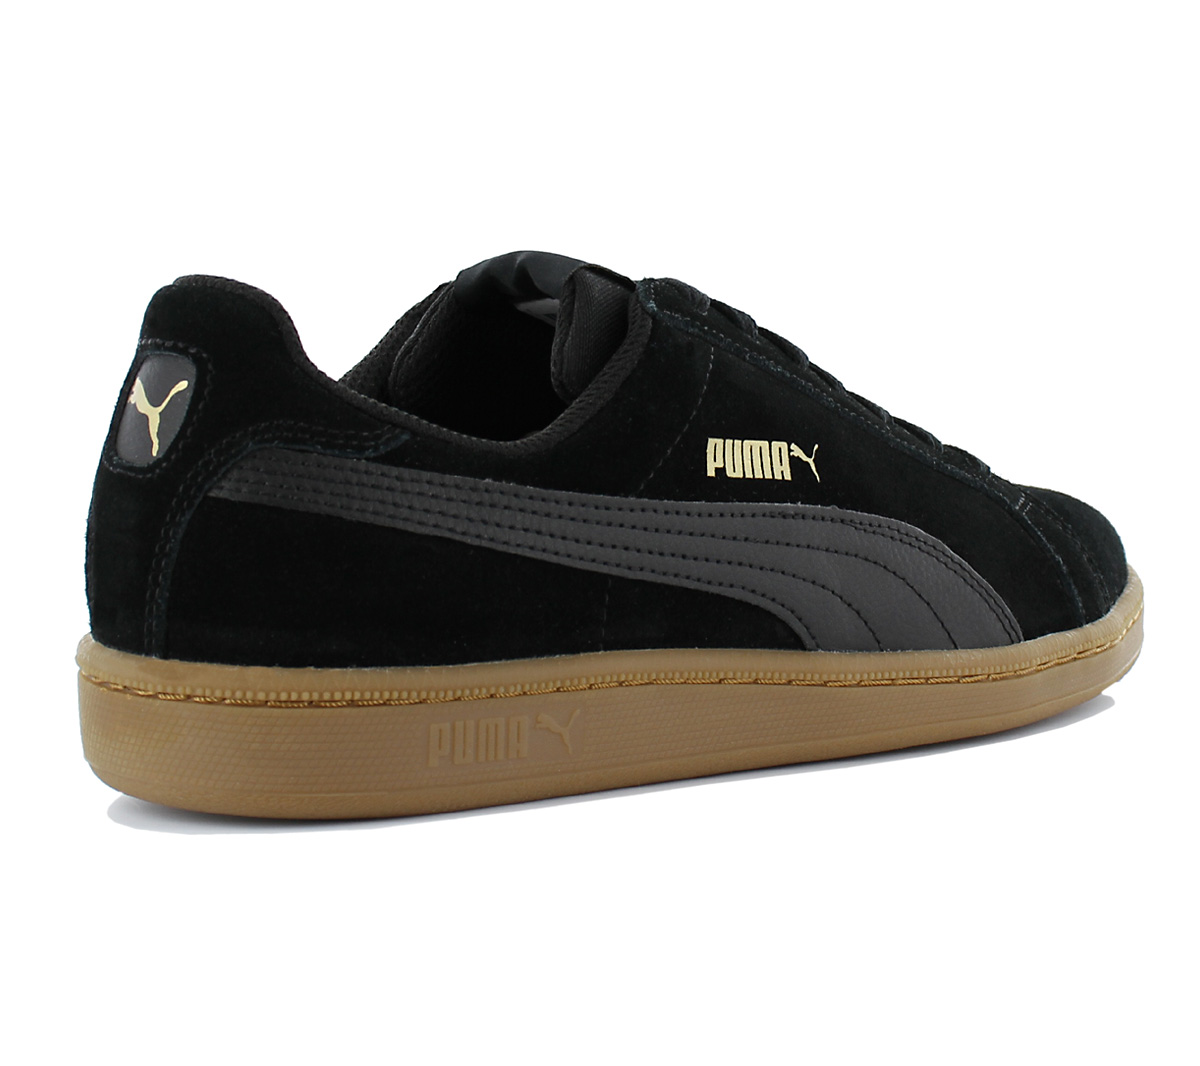 fa9f4da09c2c Puma Smash Sd Men s Sneakers Shoes Black Suede Trainers 361730-30 ...